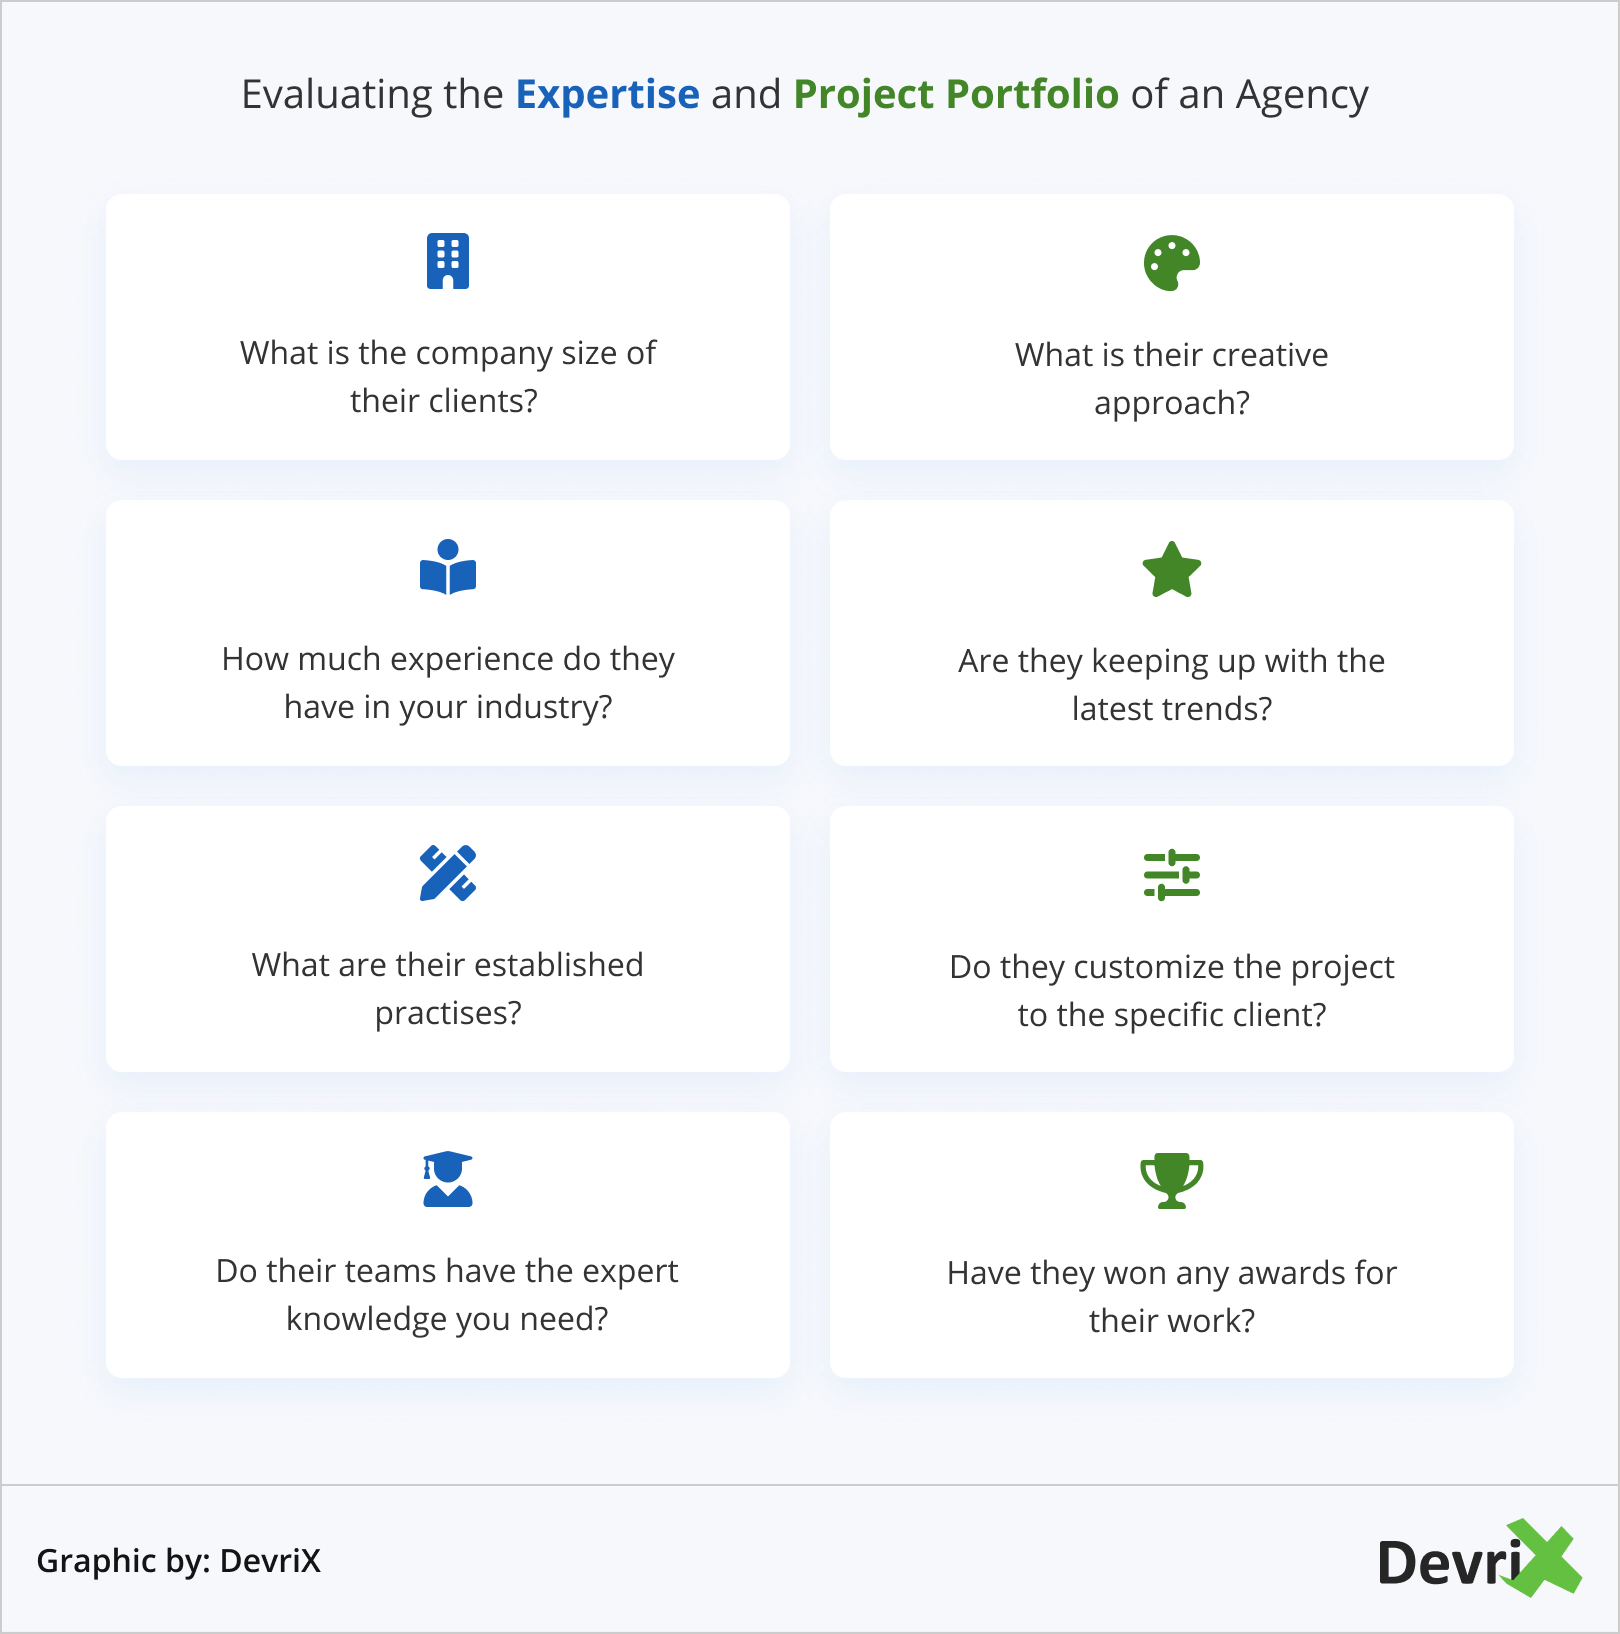 Evaluating the Expertise and Project Portfolio of an Agency